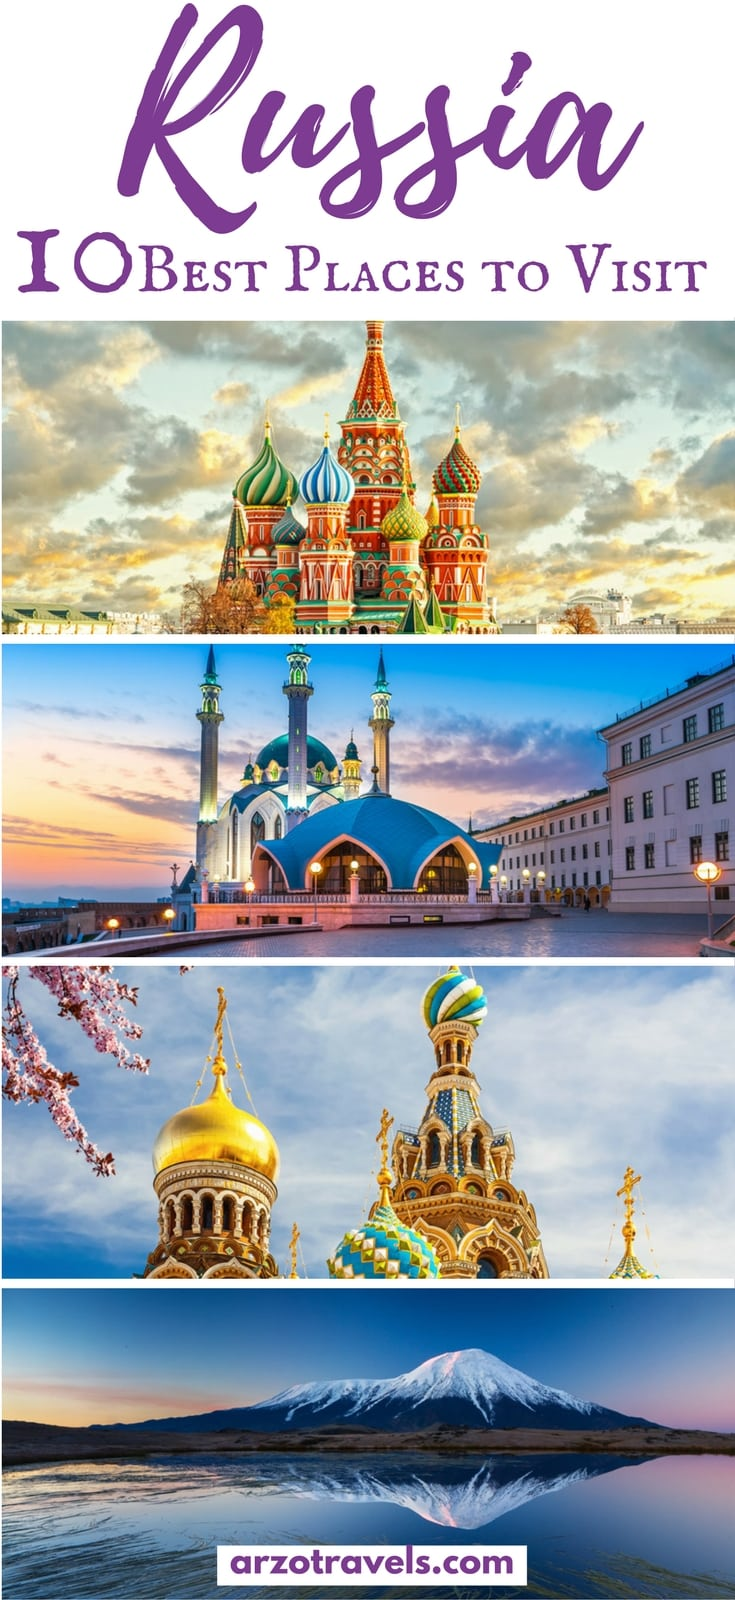 Best places to see and visit in Russia. Where to go in Russia and what to see in Russia.